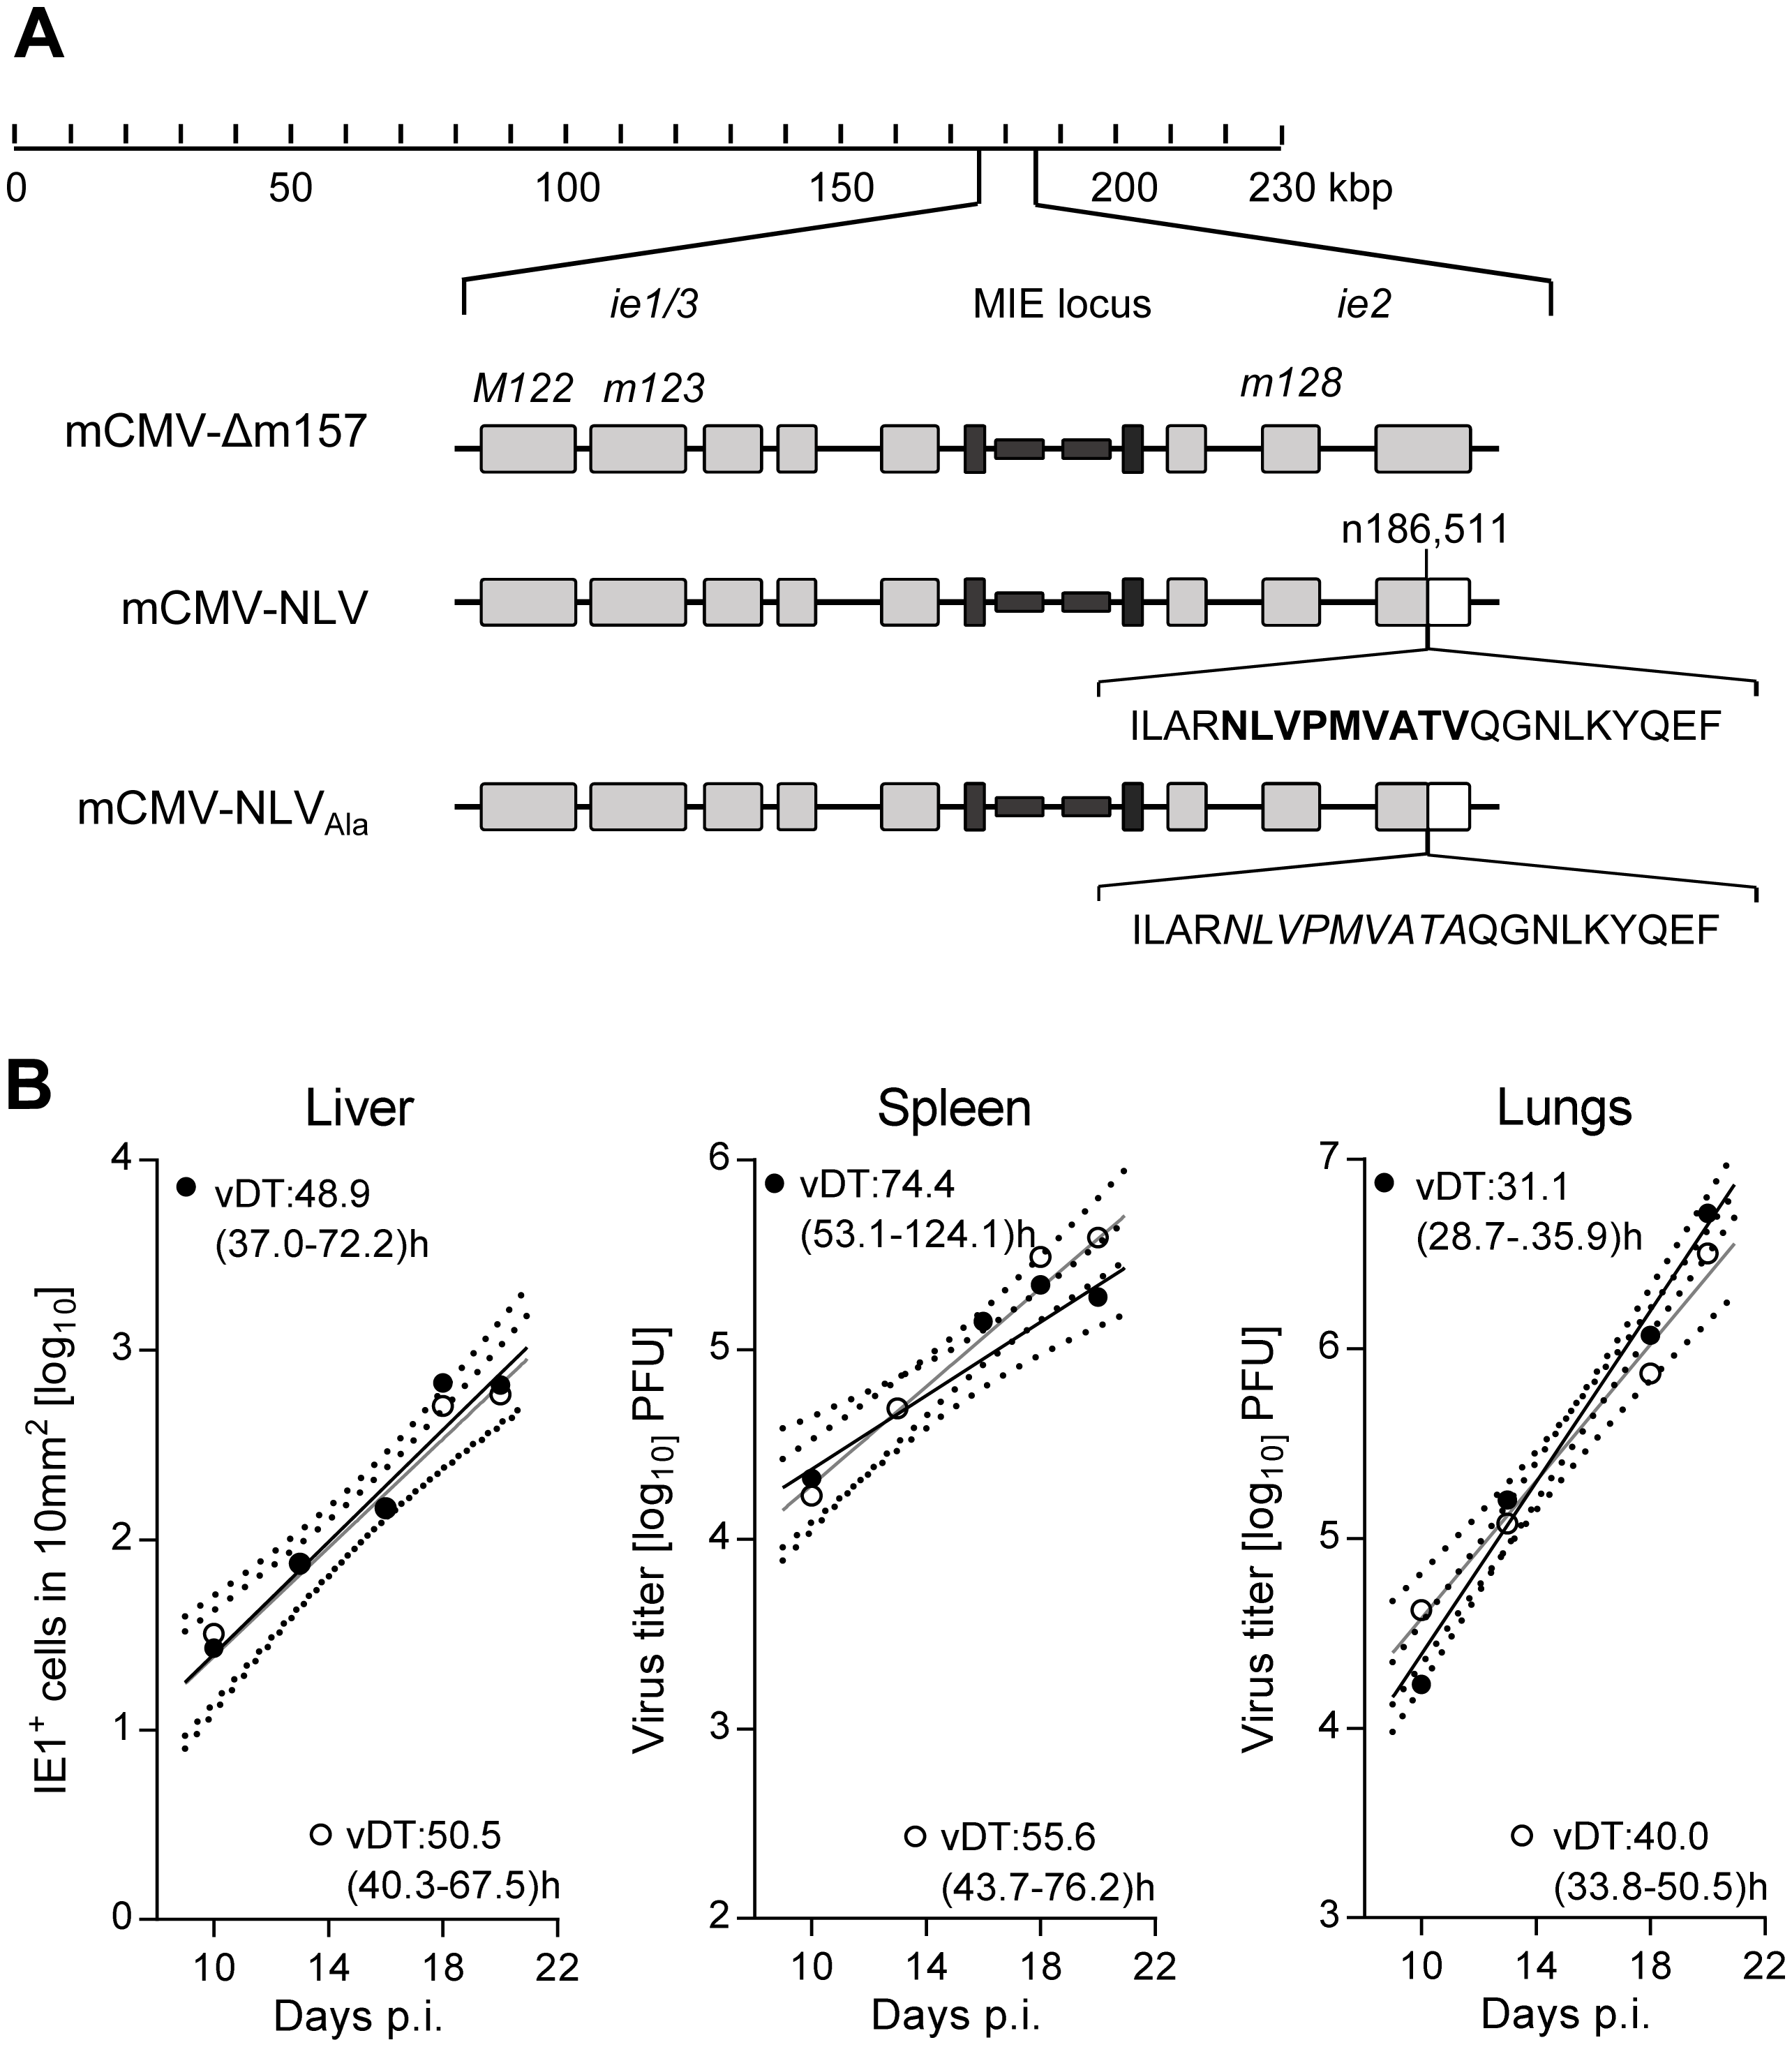 Construction and characterization of recombinant mCMV-NLV expressing the HLA-A2.1 restricted peptide NLV.